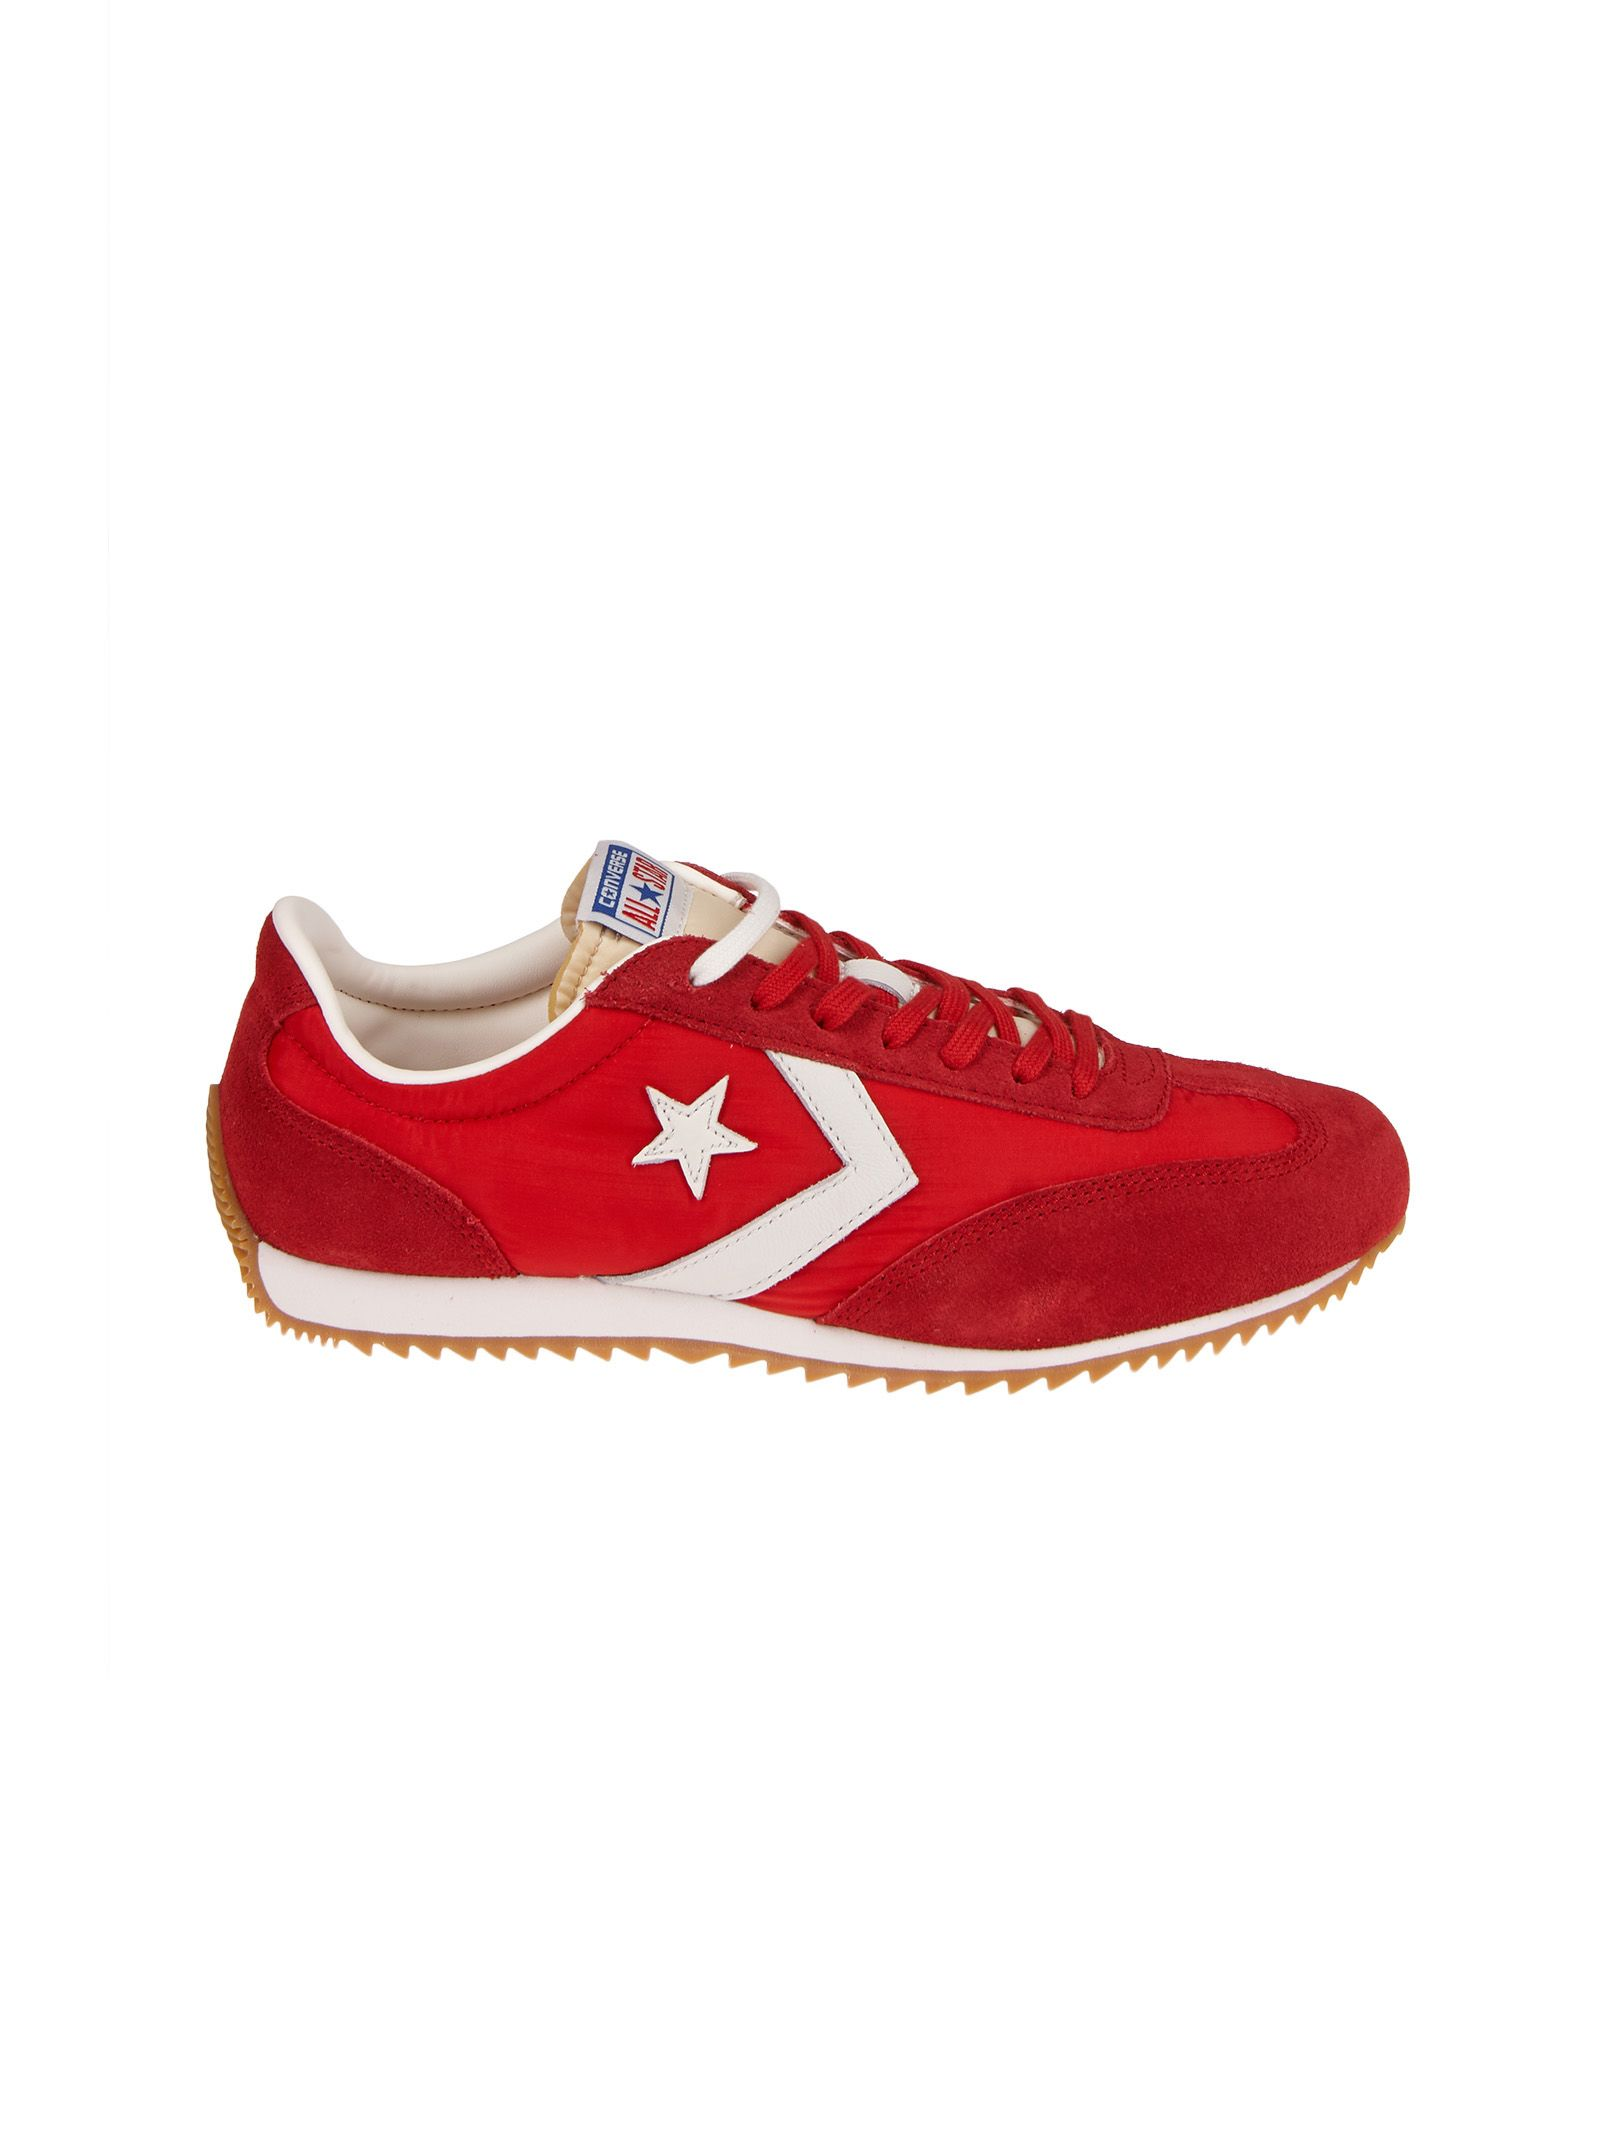 Converse All Star Trainer Ox Sneakers